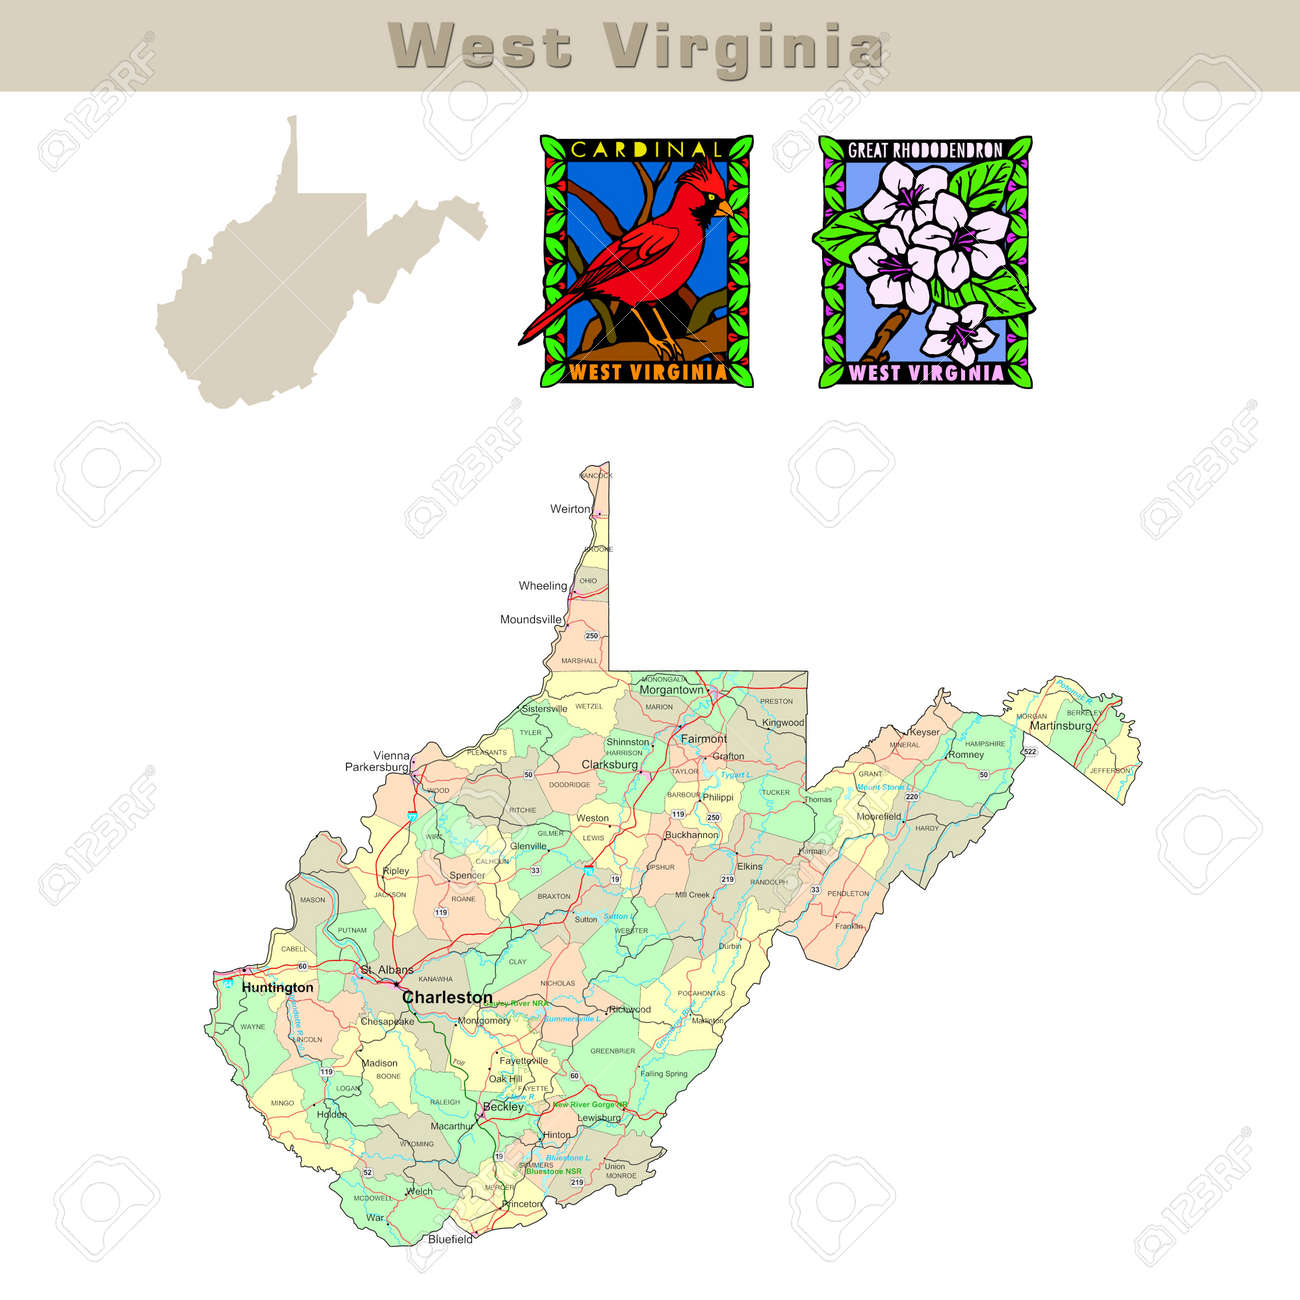 USA States Series West Virginia Political Map With Counties - Virginia usa map